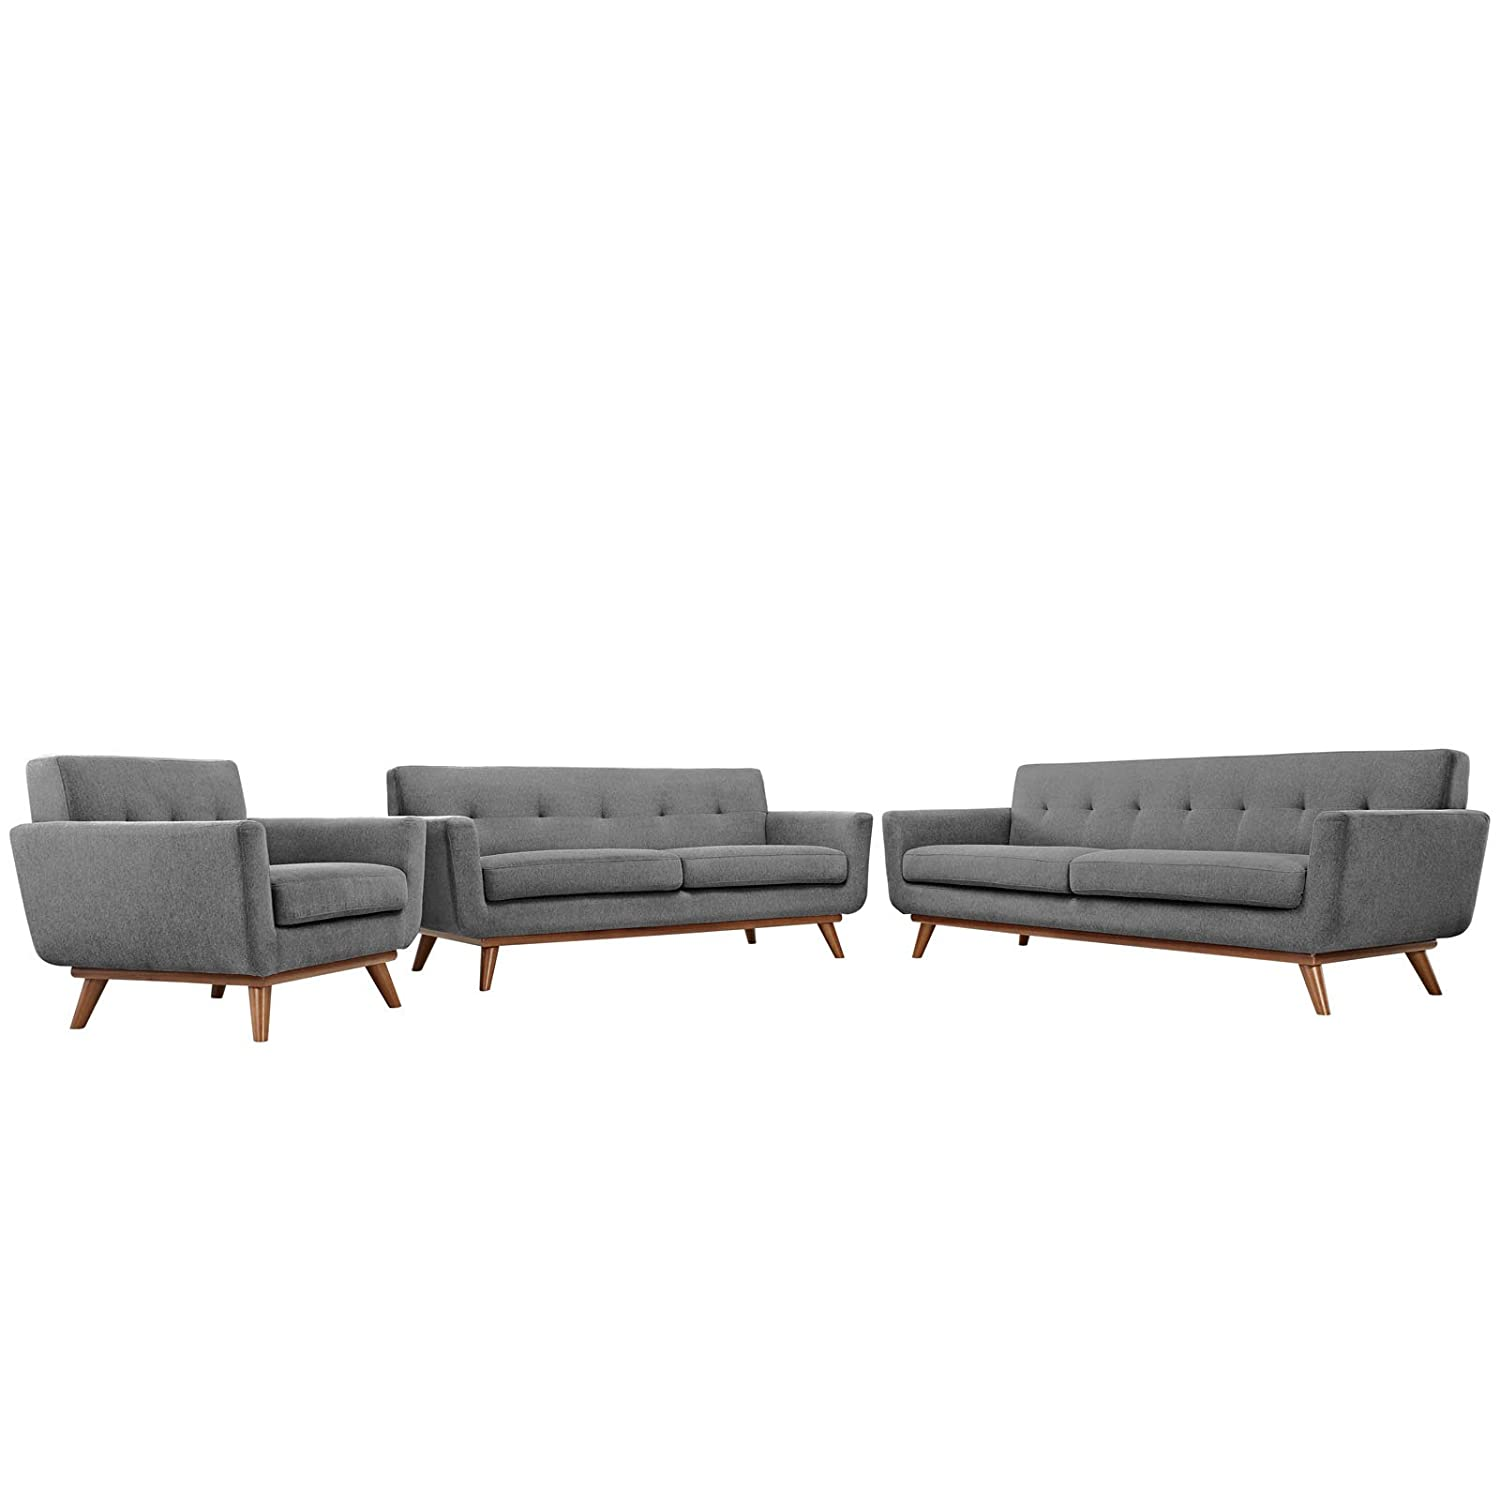 Modern Contemporary Sofa Loveseat and Armchair (set of three) - Grey Fabric